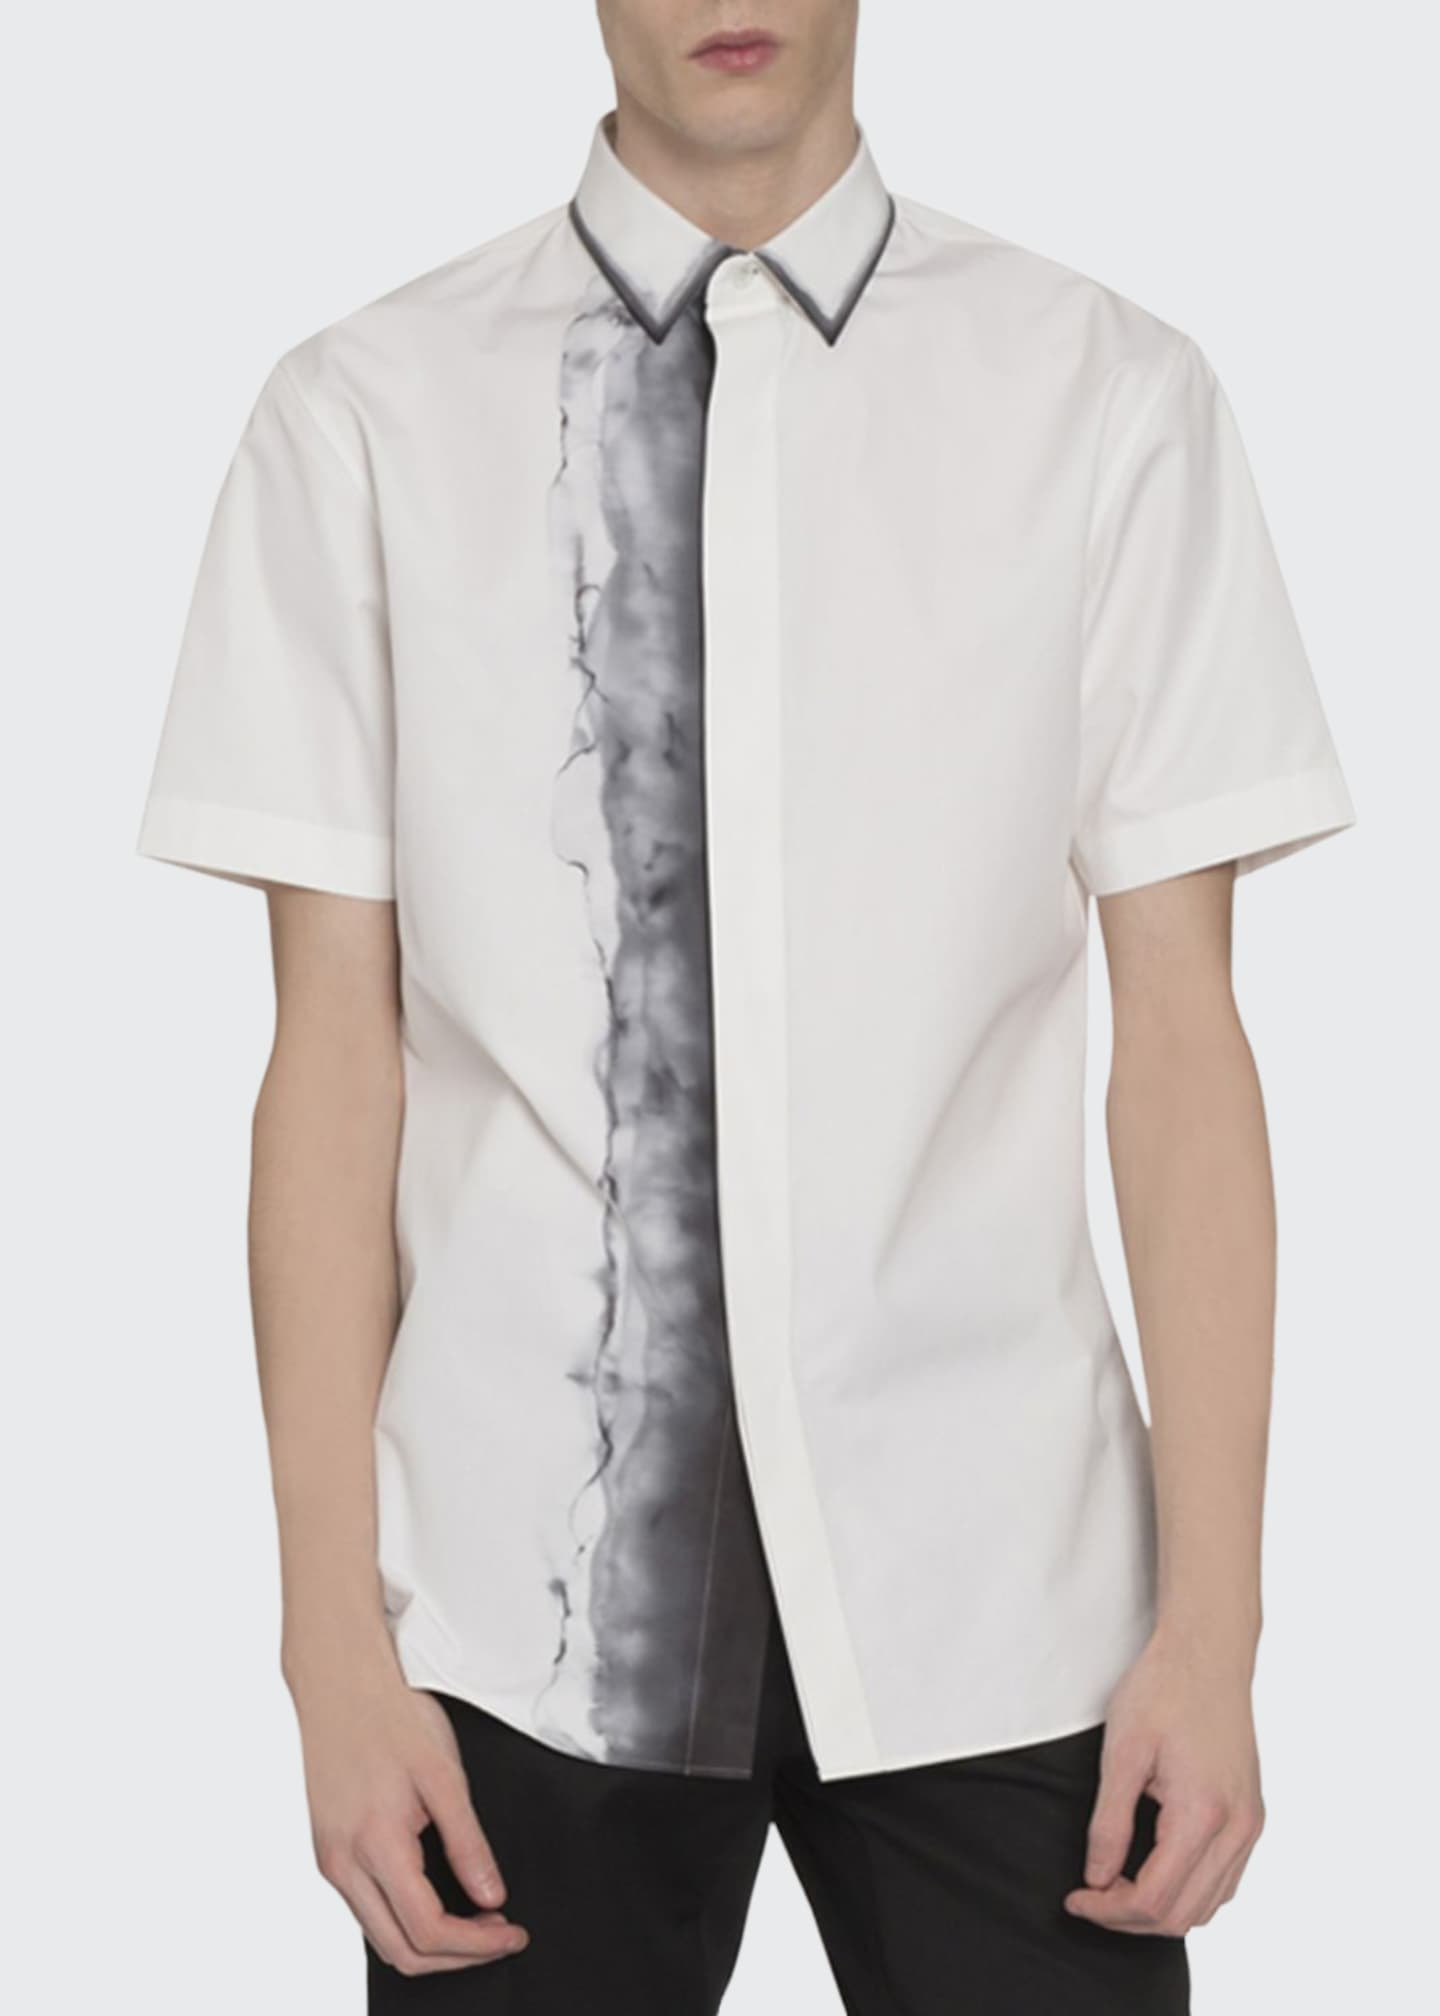 Berluti Men's Smoke-Print Short-Sleeve Sport Shirt